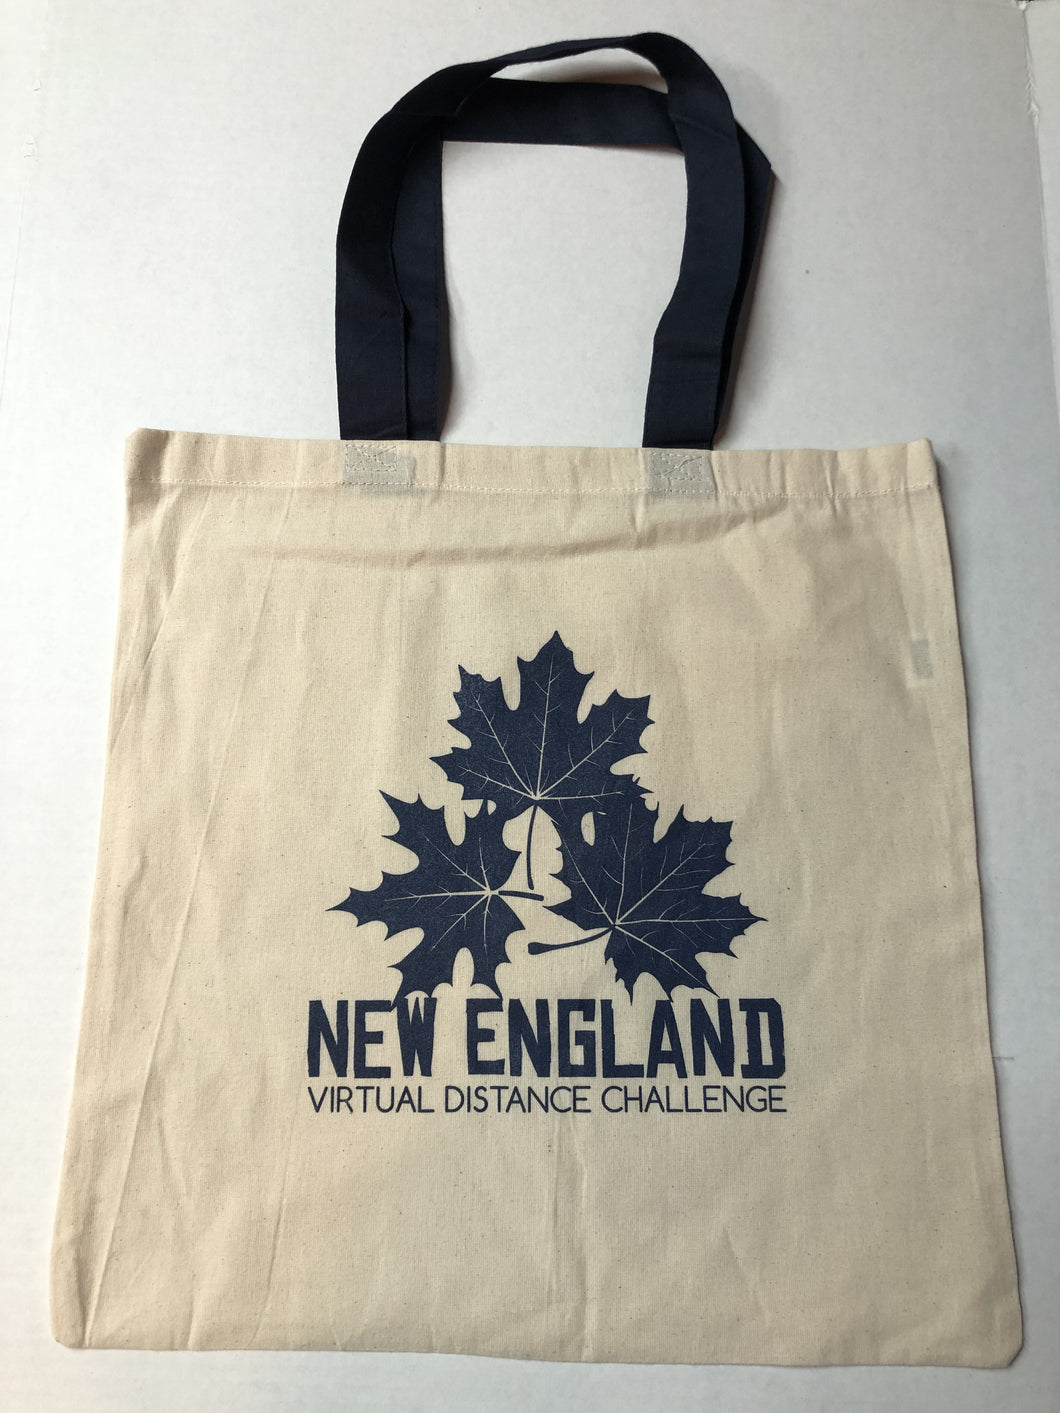 New England Virtual Distance Challenge - Tote Bag